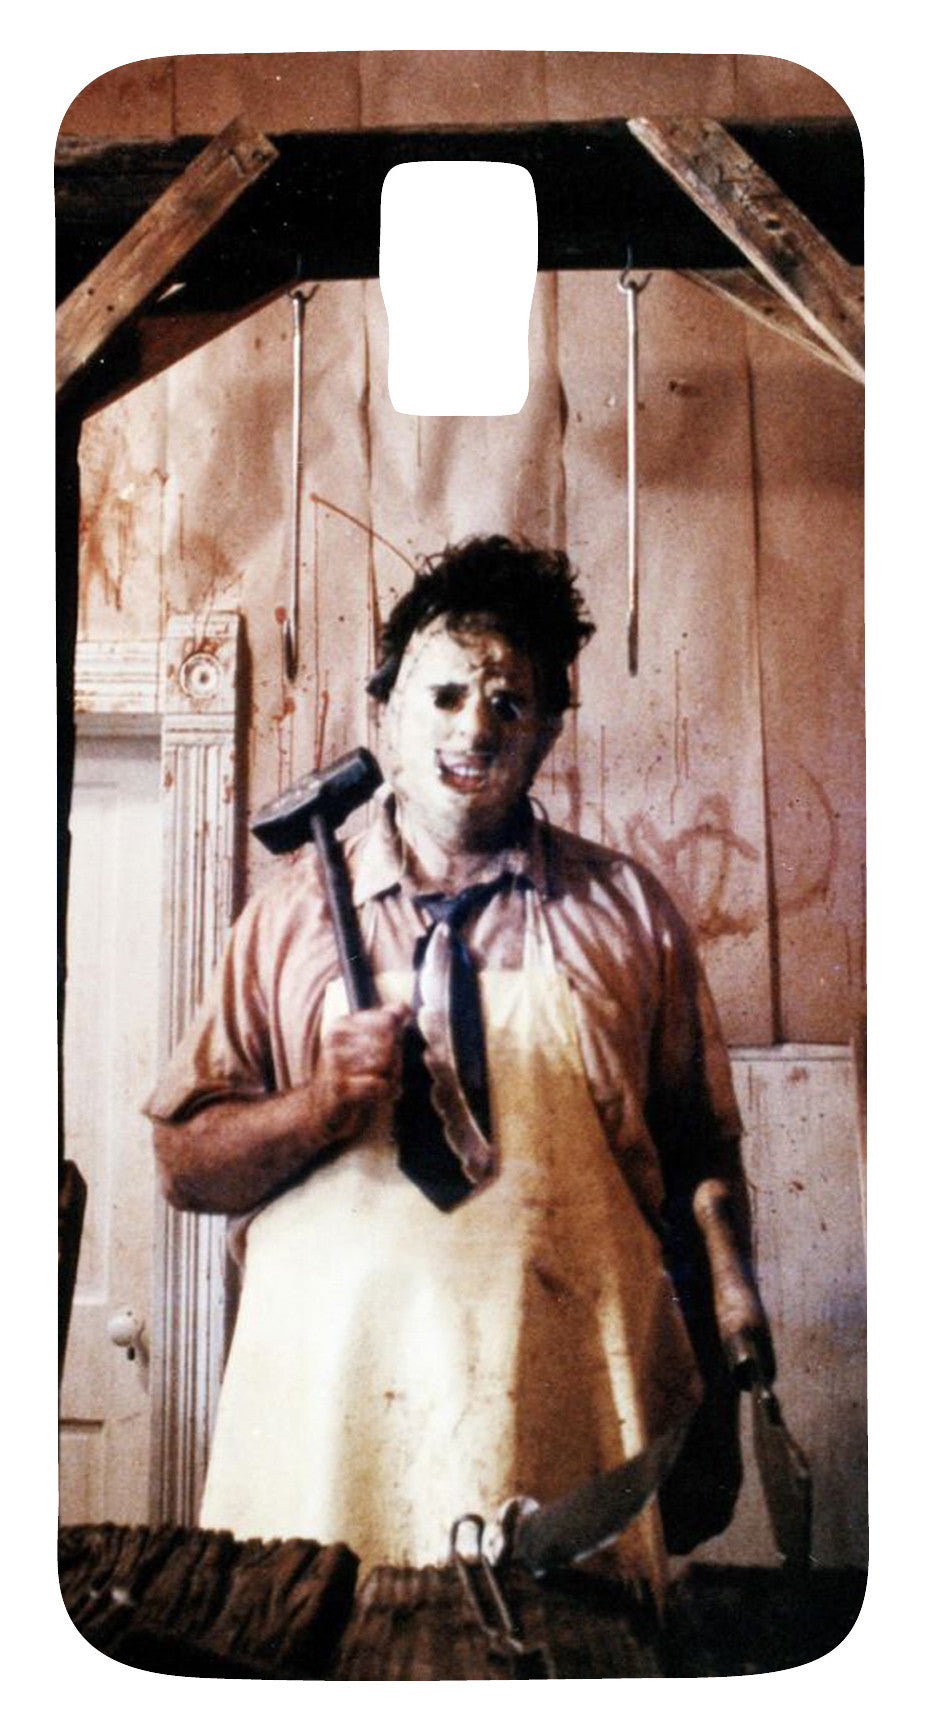 Texas Chainsaw Massacre Leatherface S5 Phone Case